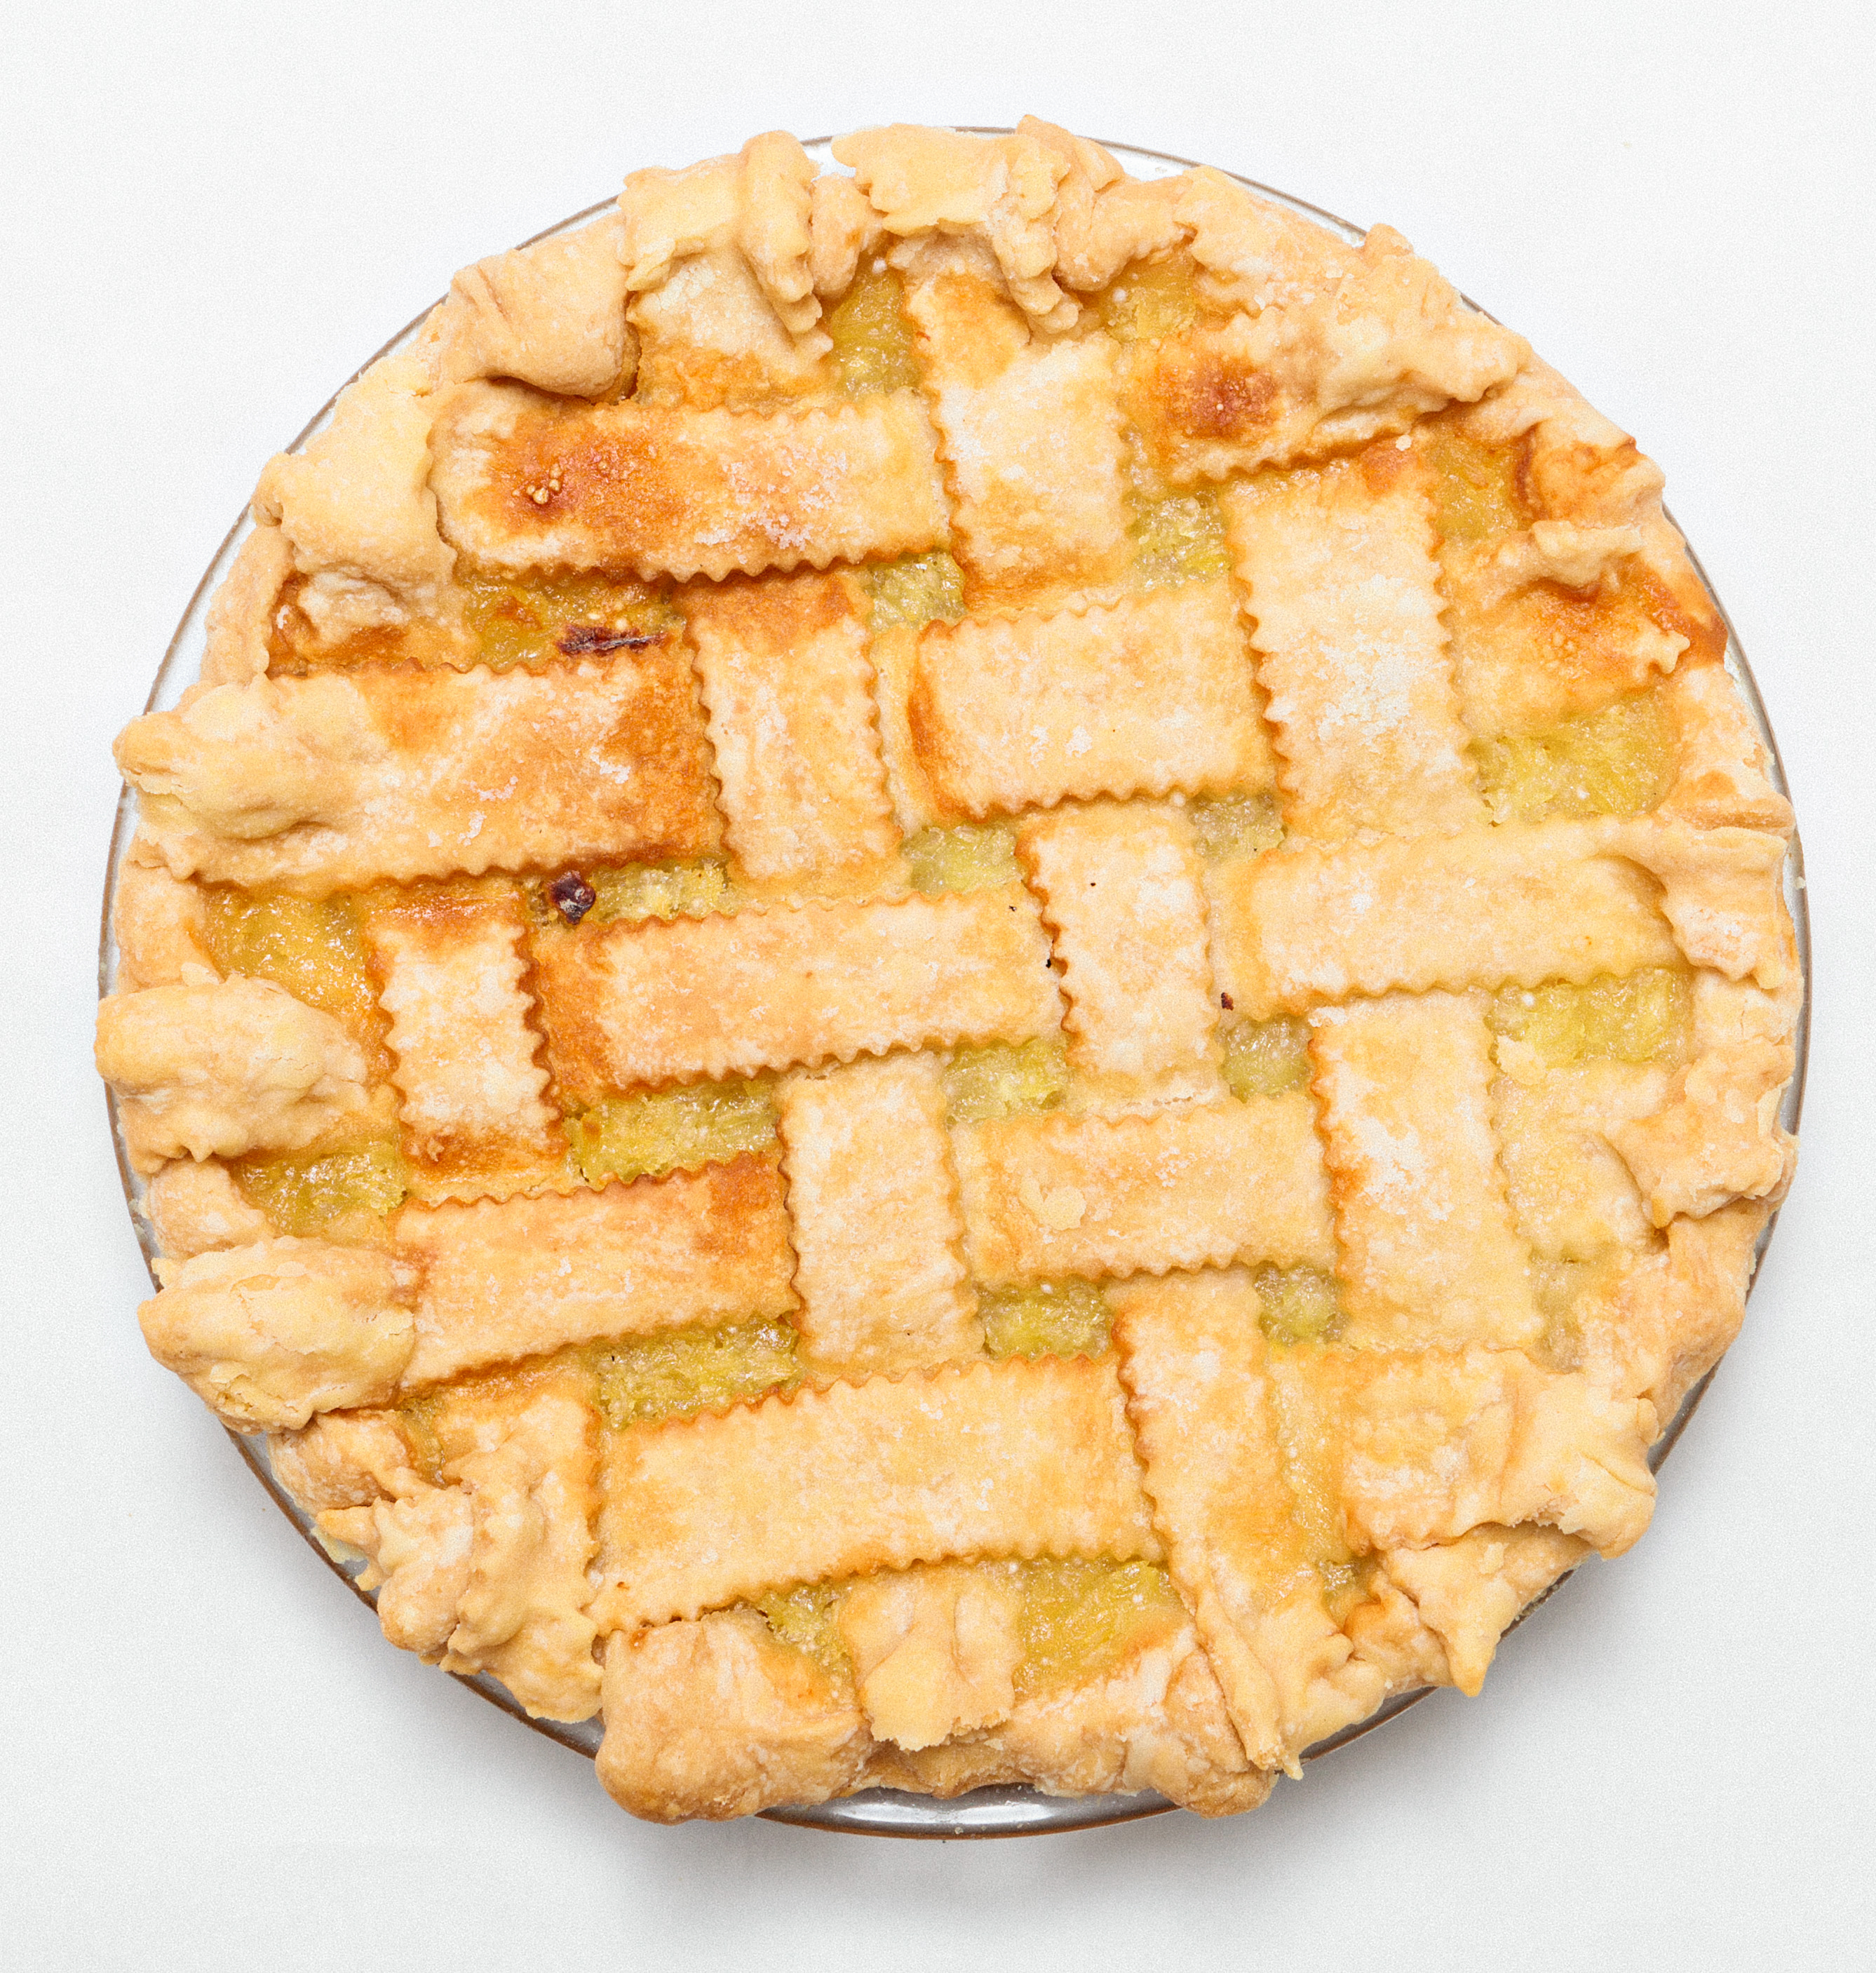 Pineapple Pie (Lattice Crust)